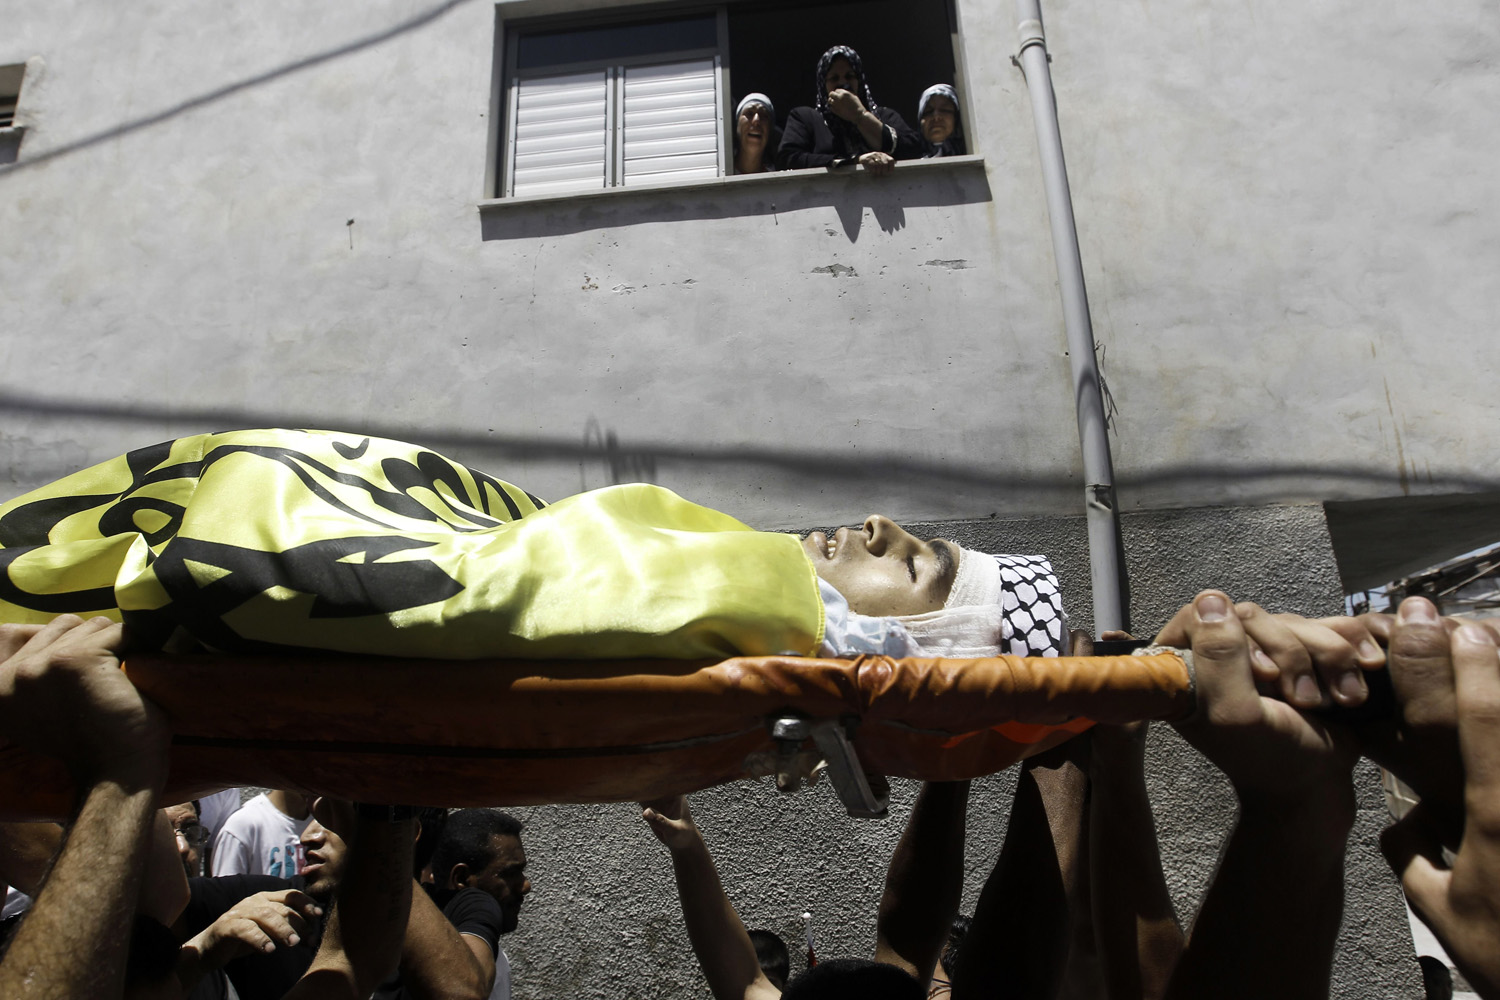 Jul. 1, 2014. Palestinian mourners carry the body of Yusuf Abu Zagher, 18, during his funeral in the Jenin refugee camp, in the northern Israeli occupied West Bank.